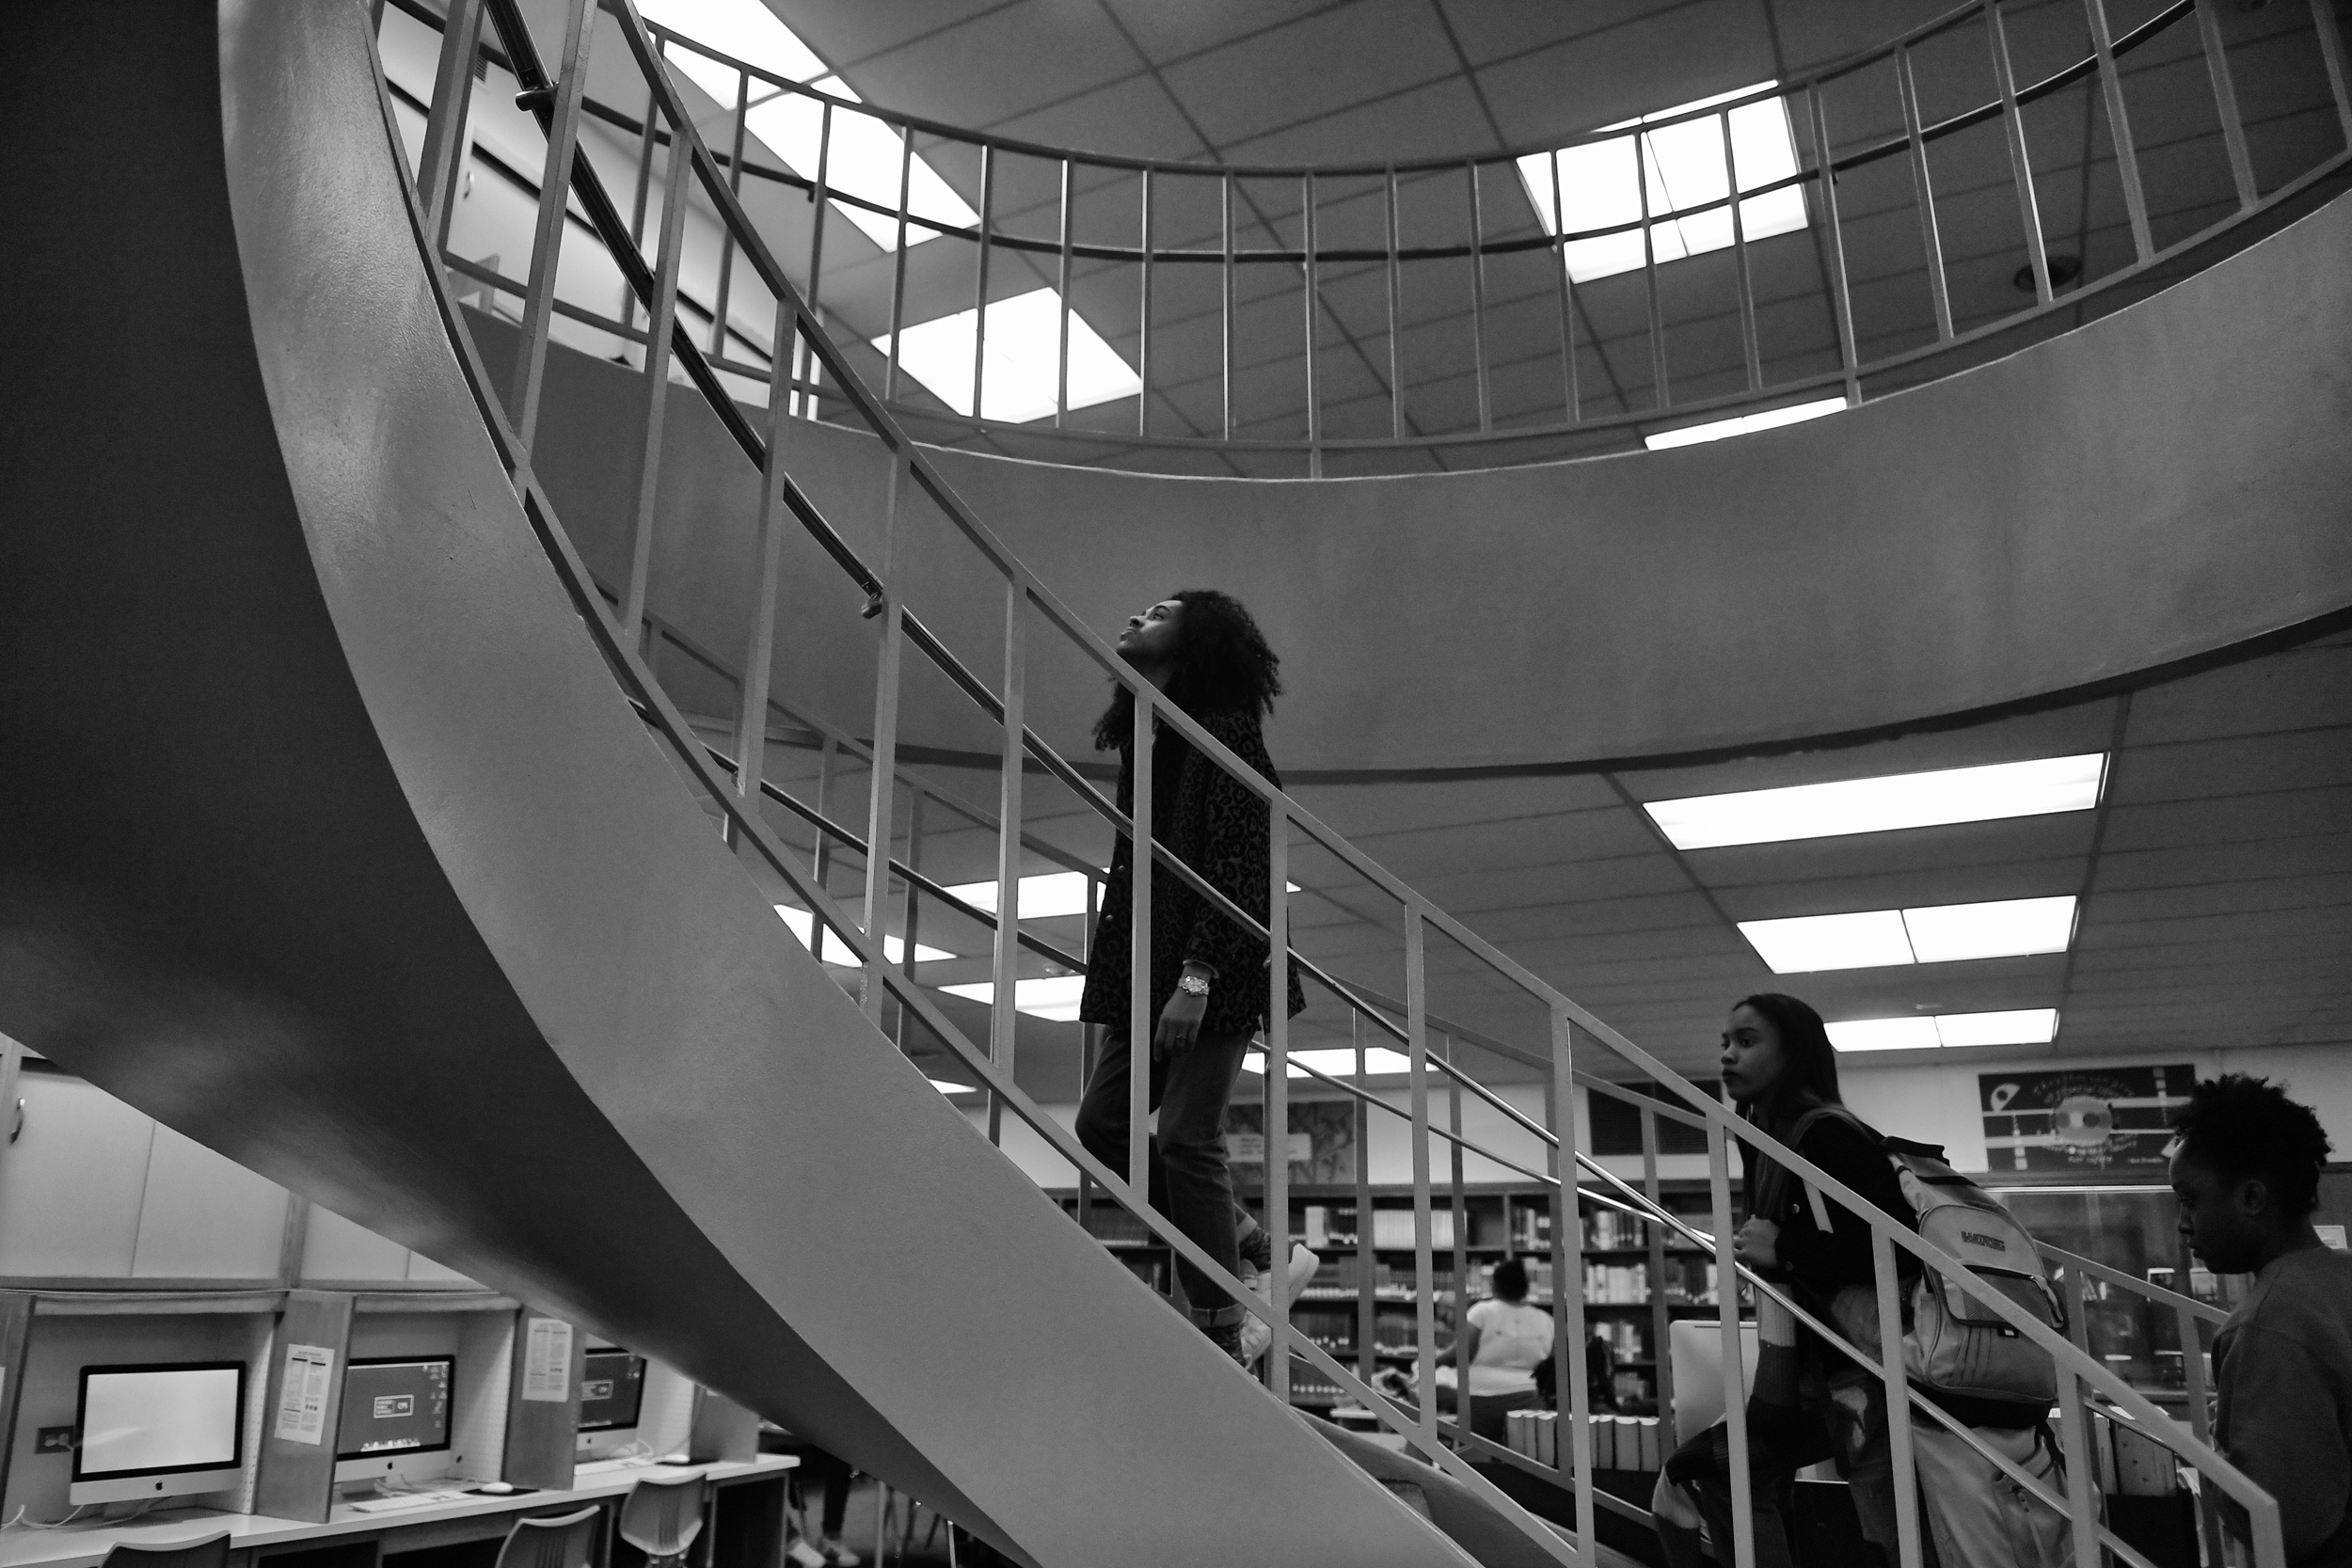 leads his fellow students up the stairs in the library on January 10, 2017 at Kenwood High School in Chicago, Illinois.